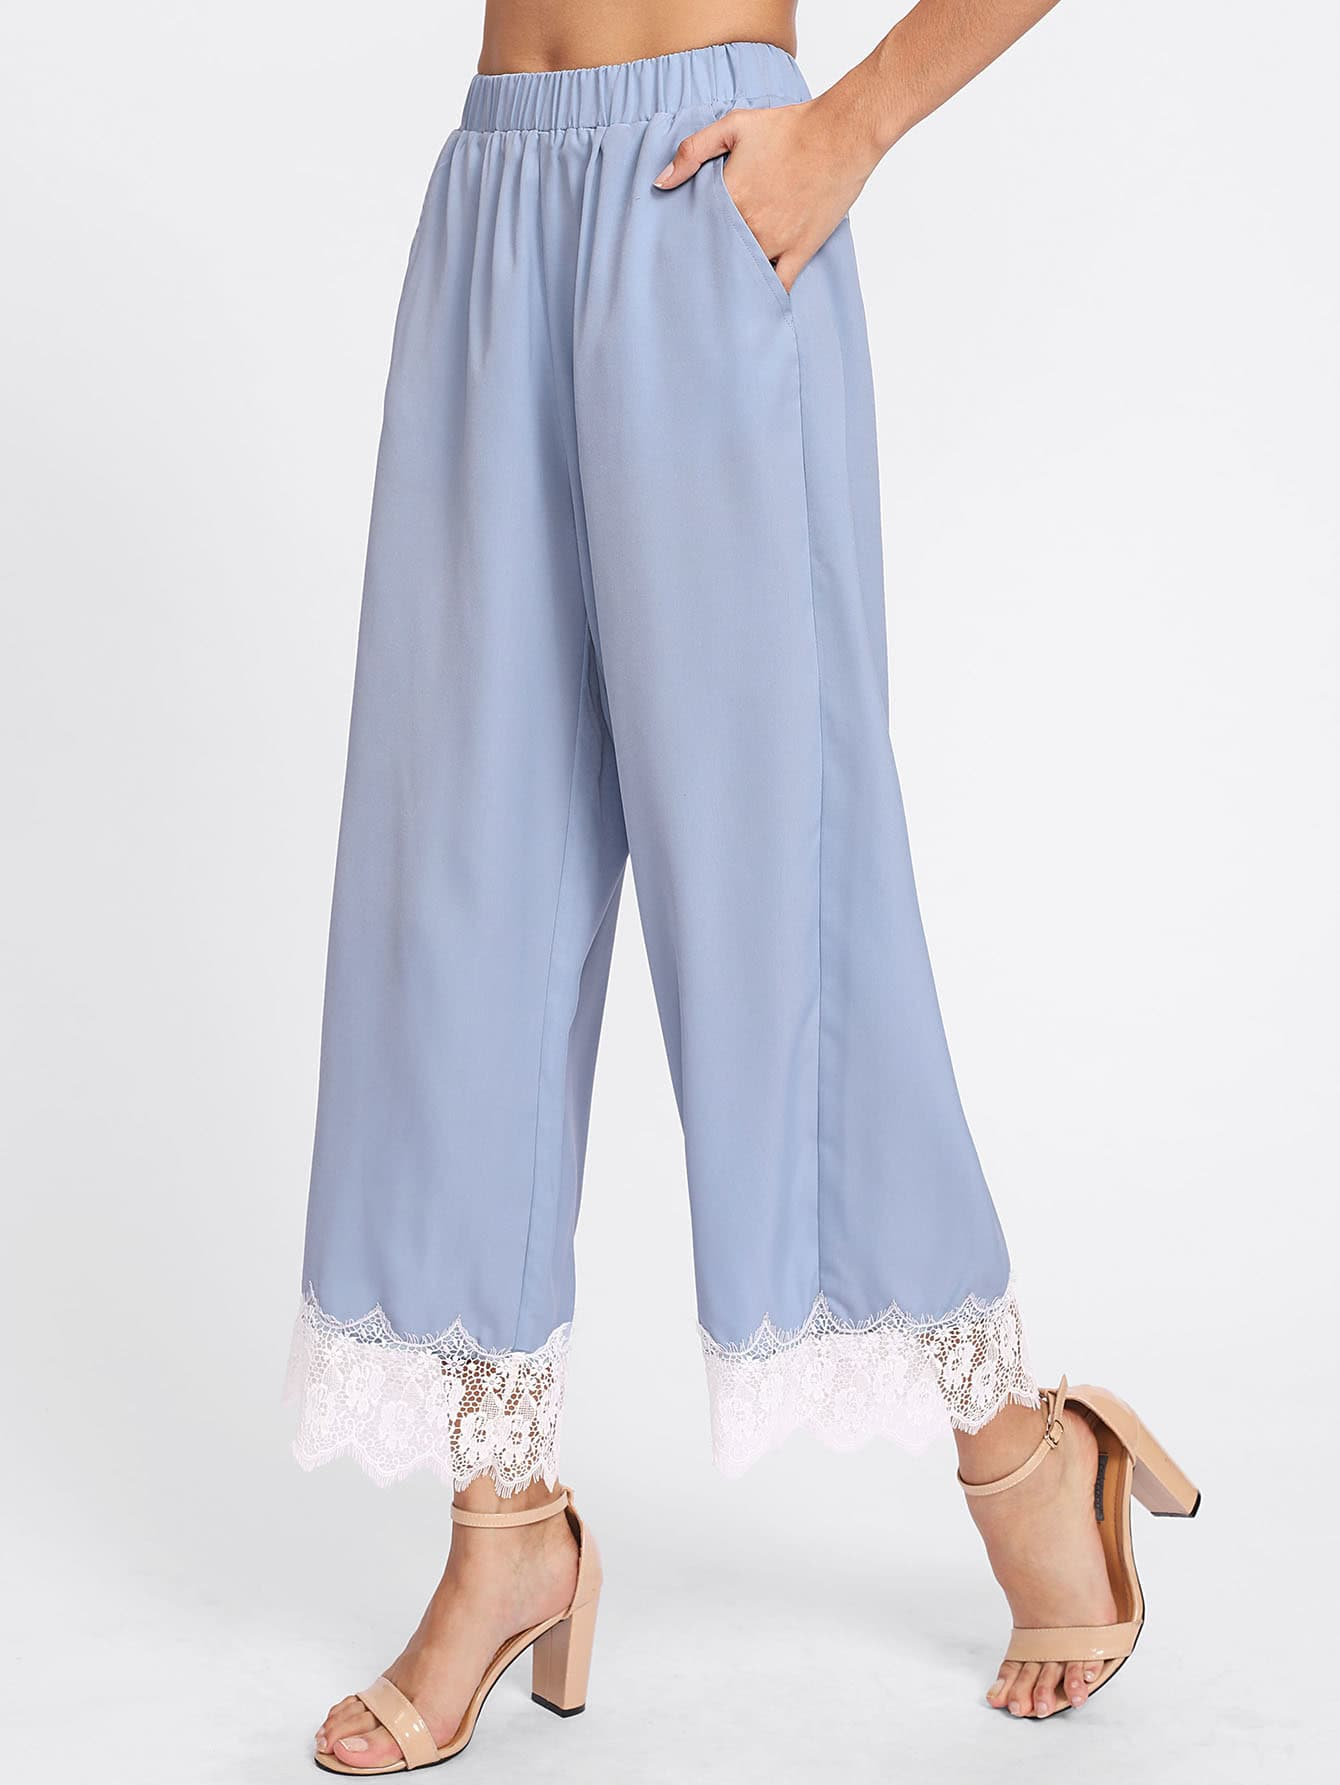 Image of Contrast Lace Trim Palazzo Pants